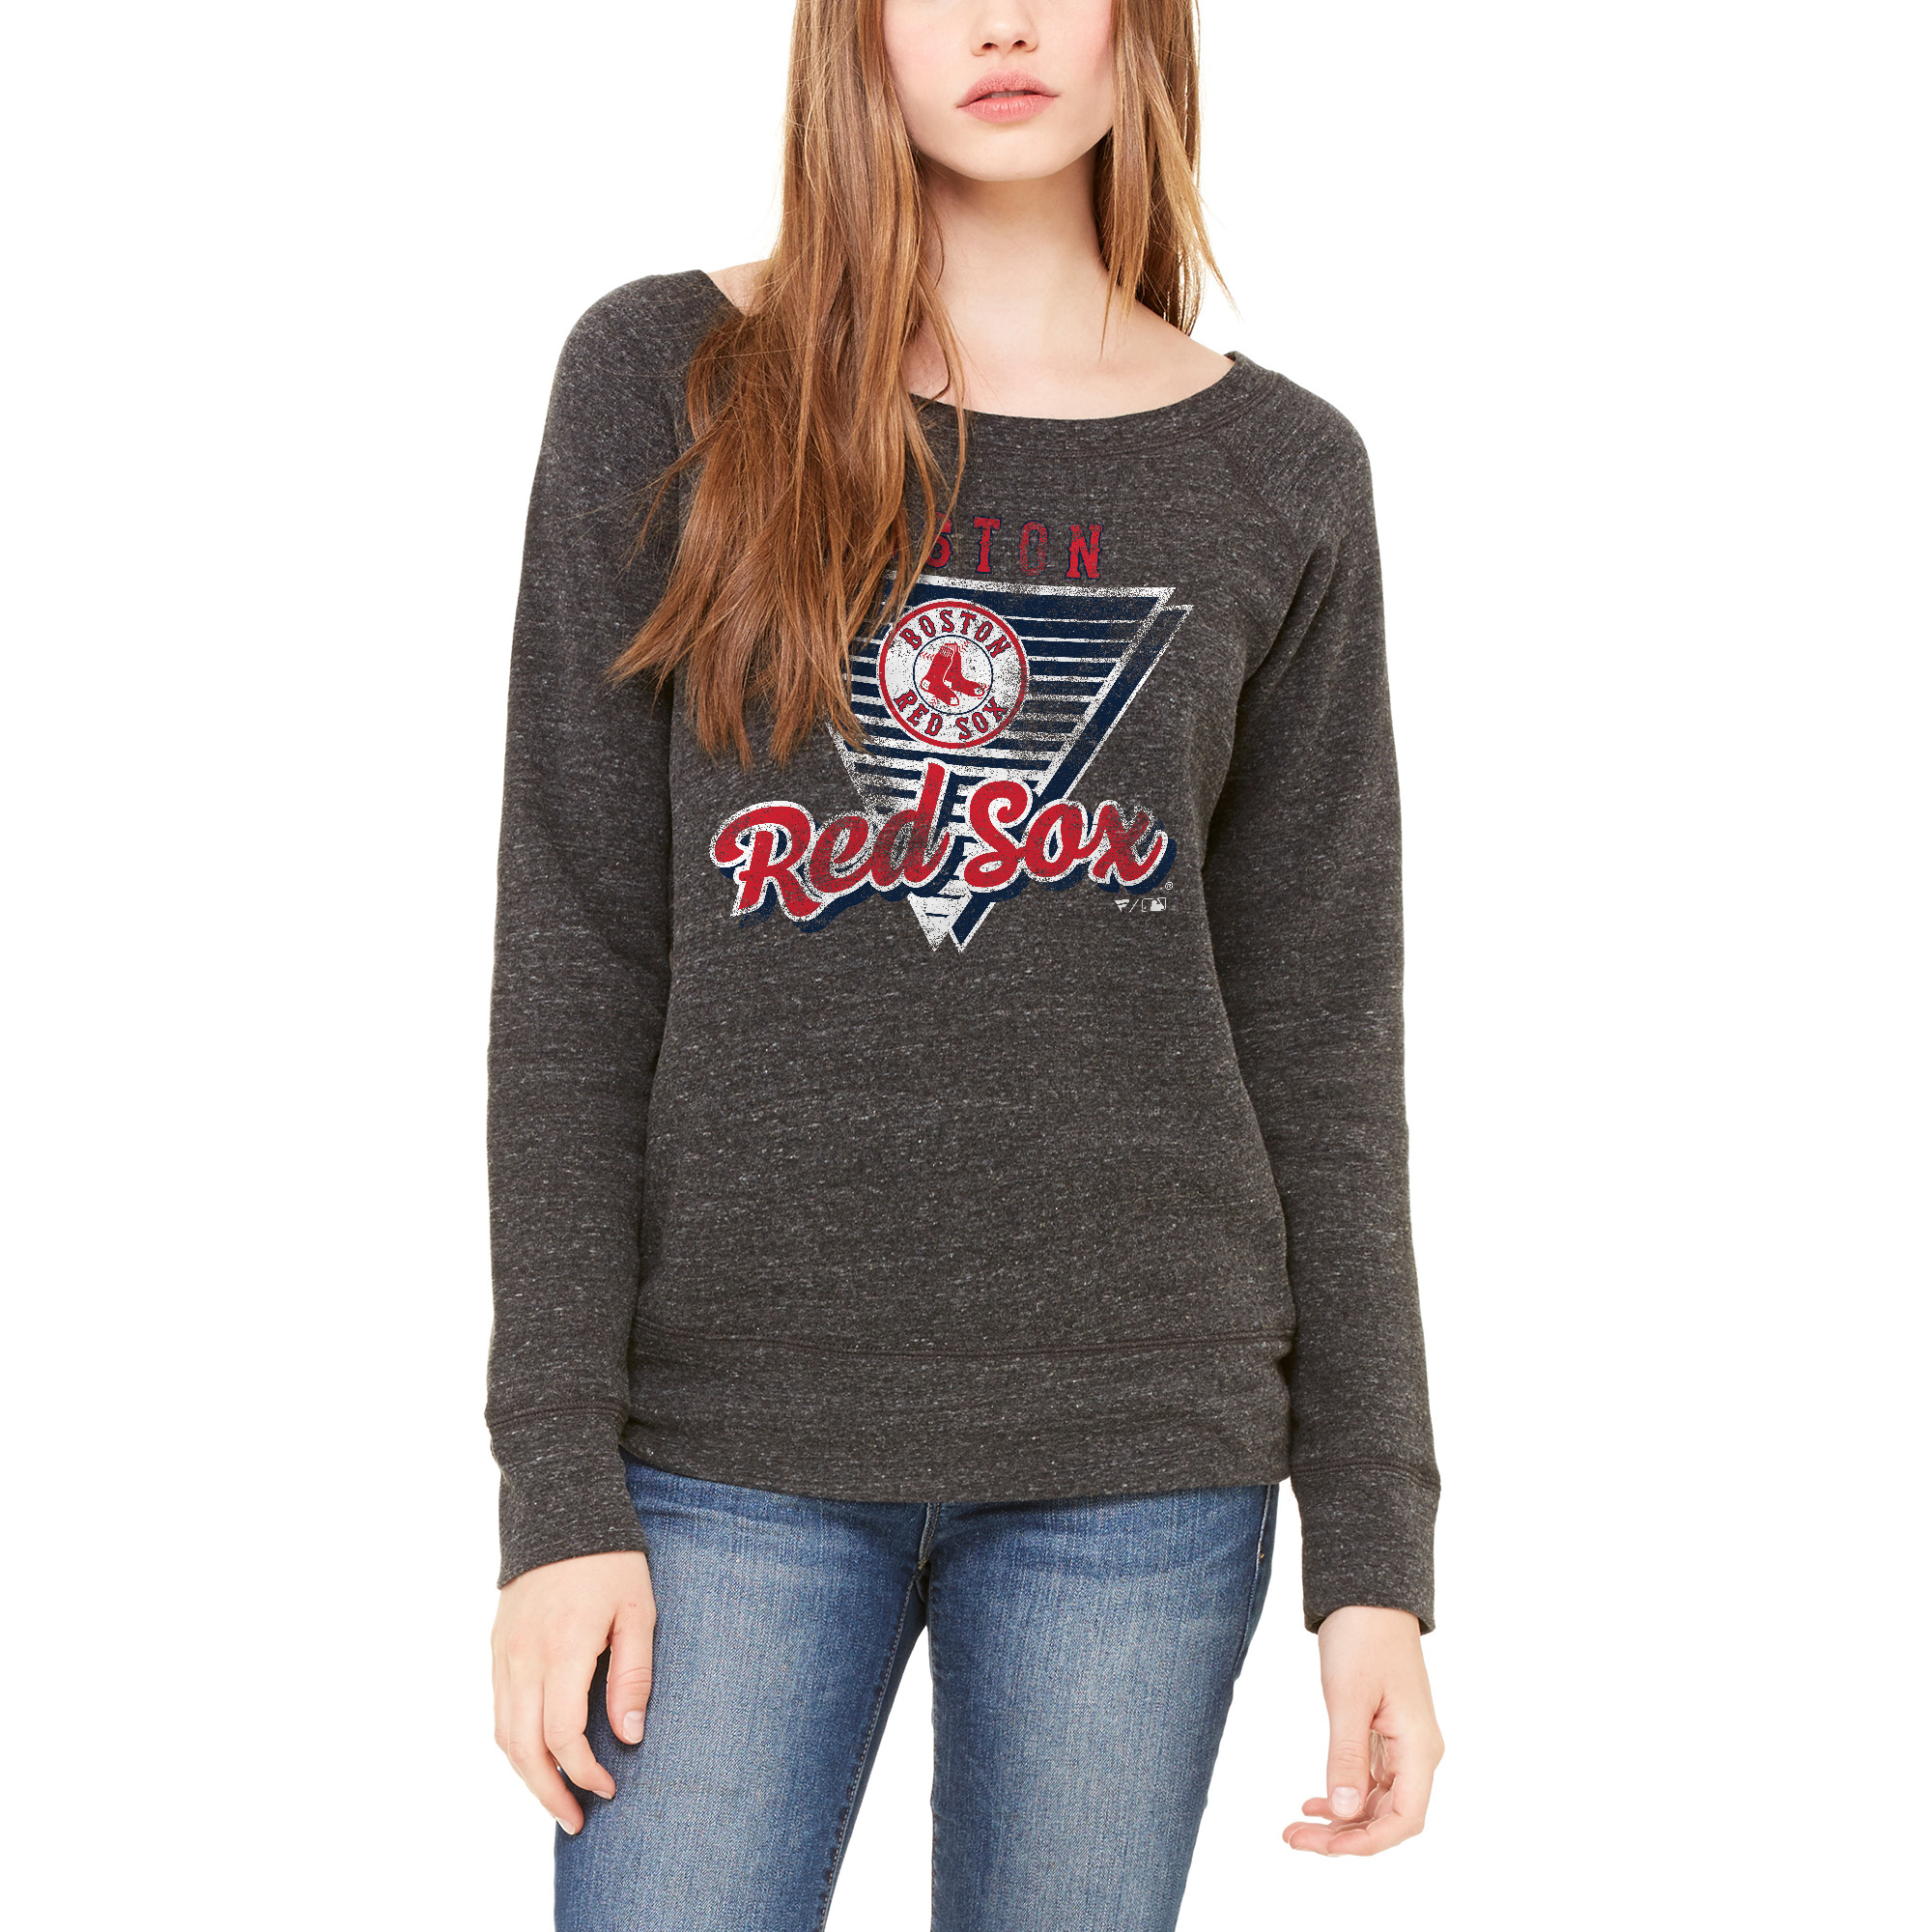 Boston Red Sox Let Loose by RNL Women's Eighty Something Wide Neck Sweatshirt - Charcoal